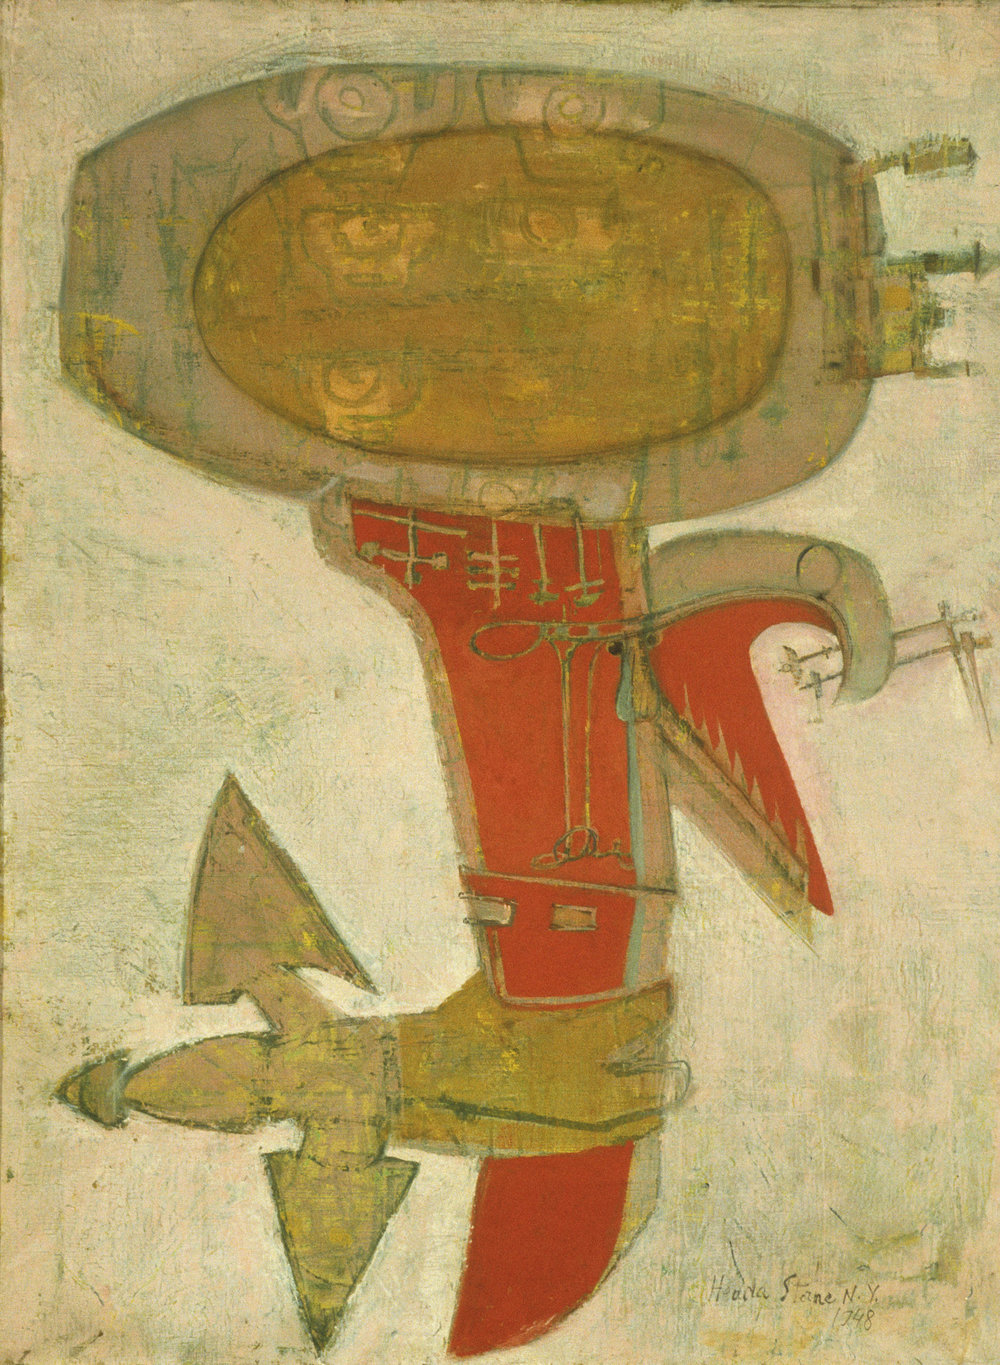 Hedda Sterne, Outboard Motor, 1948, Oil on canvas, 31 3/4 in. x 23 5/8 in., Collection of The Heckscher Museum of Art; Gift of the artist in memory of Betty Parsons, 1999.28